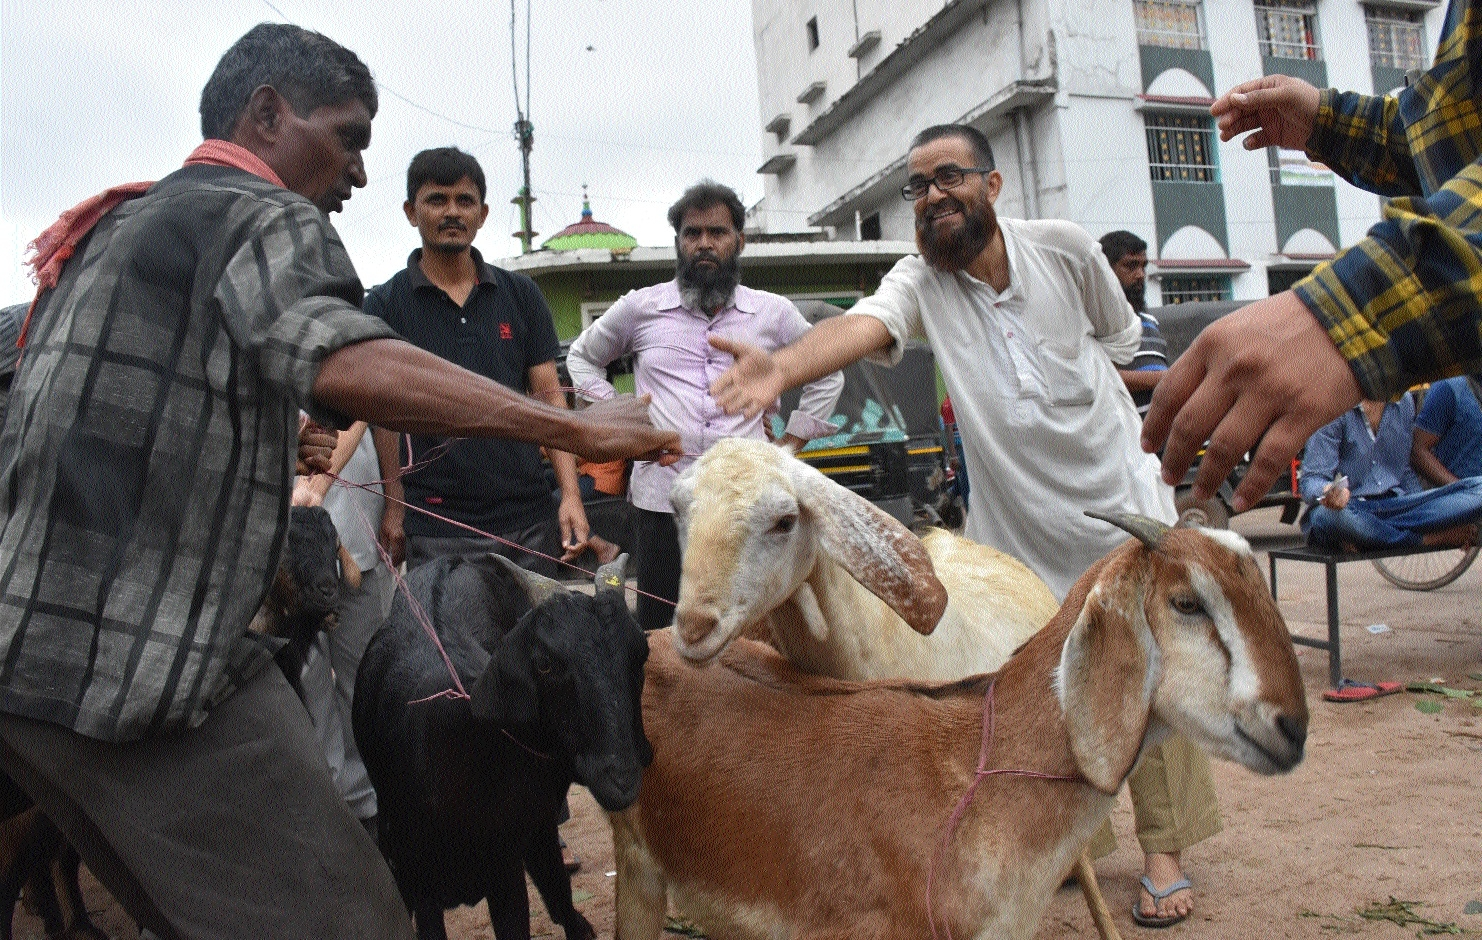 Goats available in plenty this Eid; rates dip